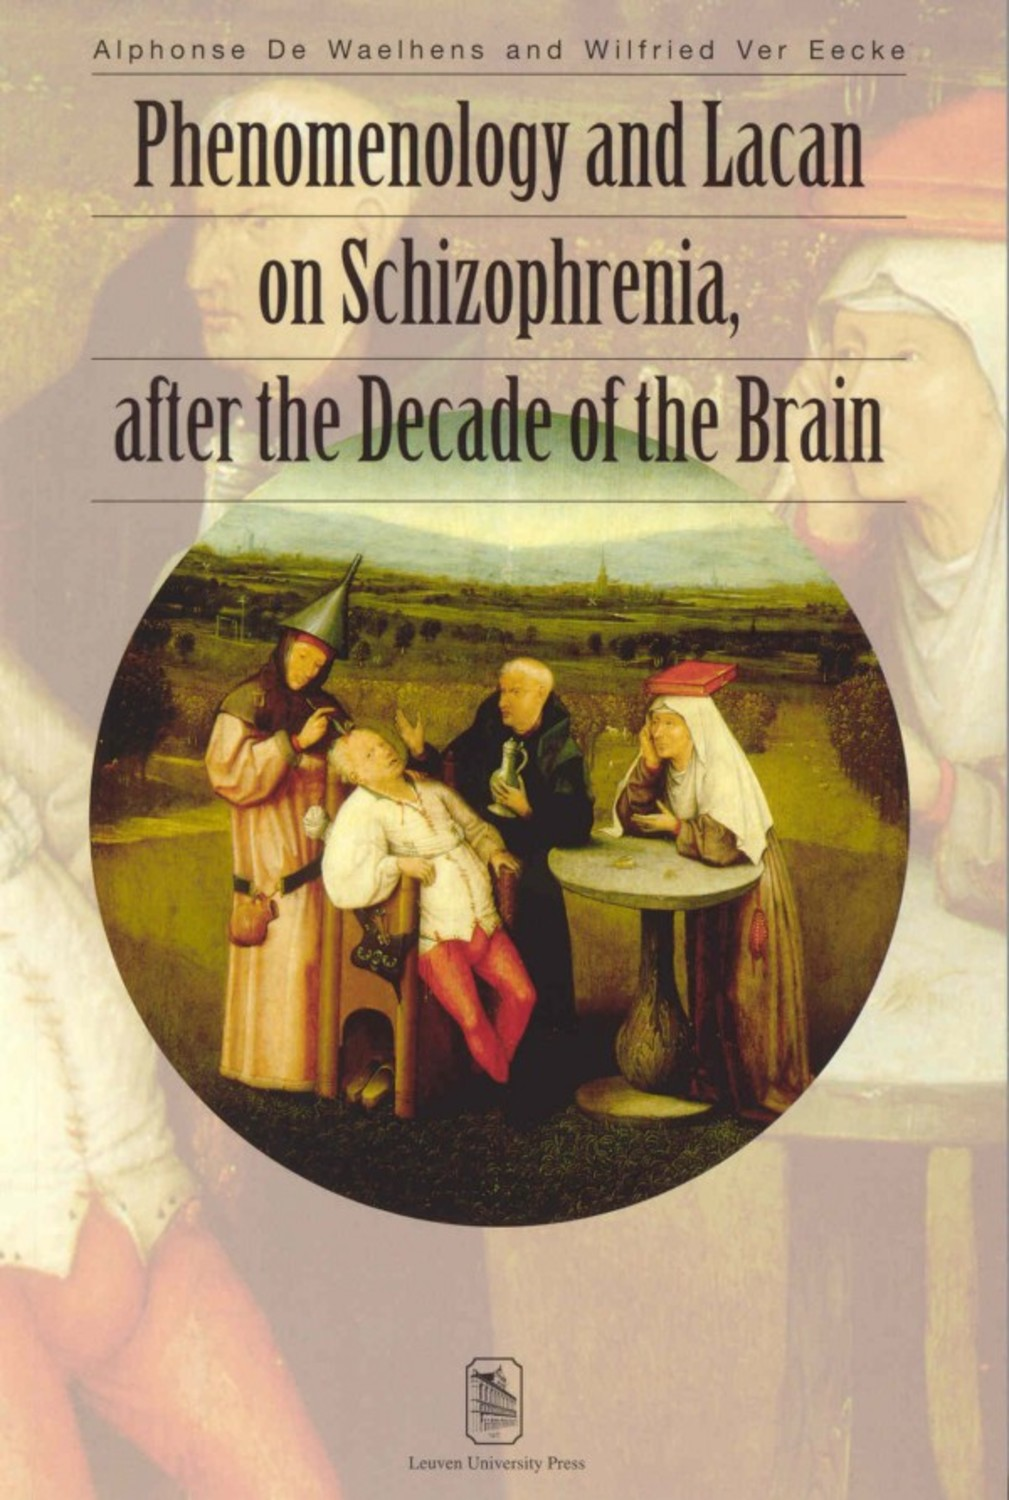 Phenomenology and Lacan on Schizophrenia, after the Decade of the Brain